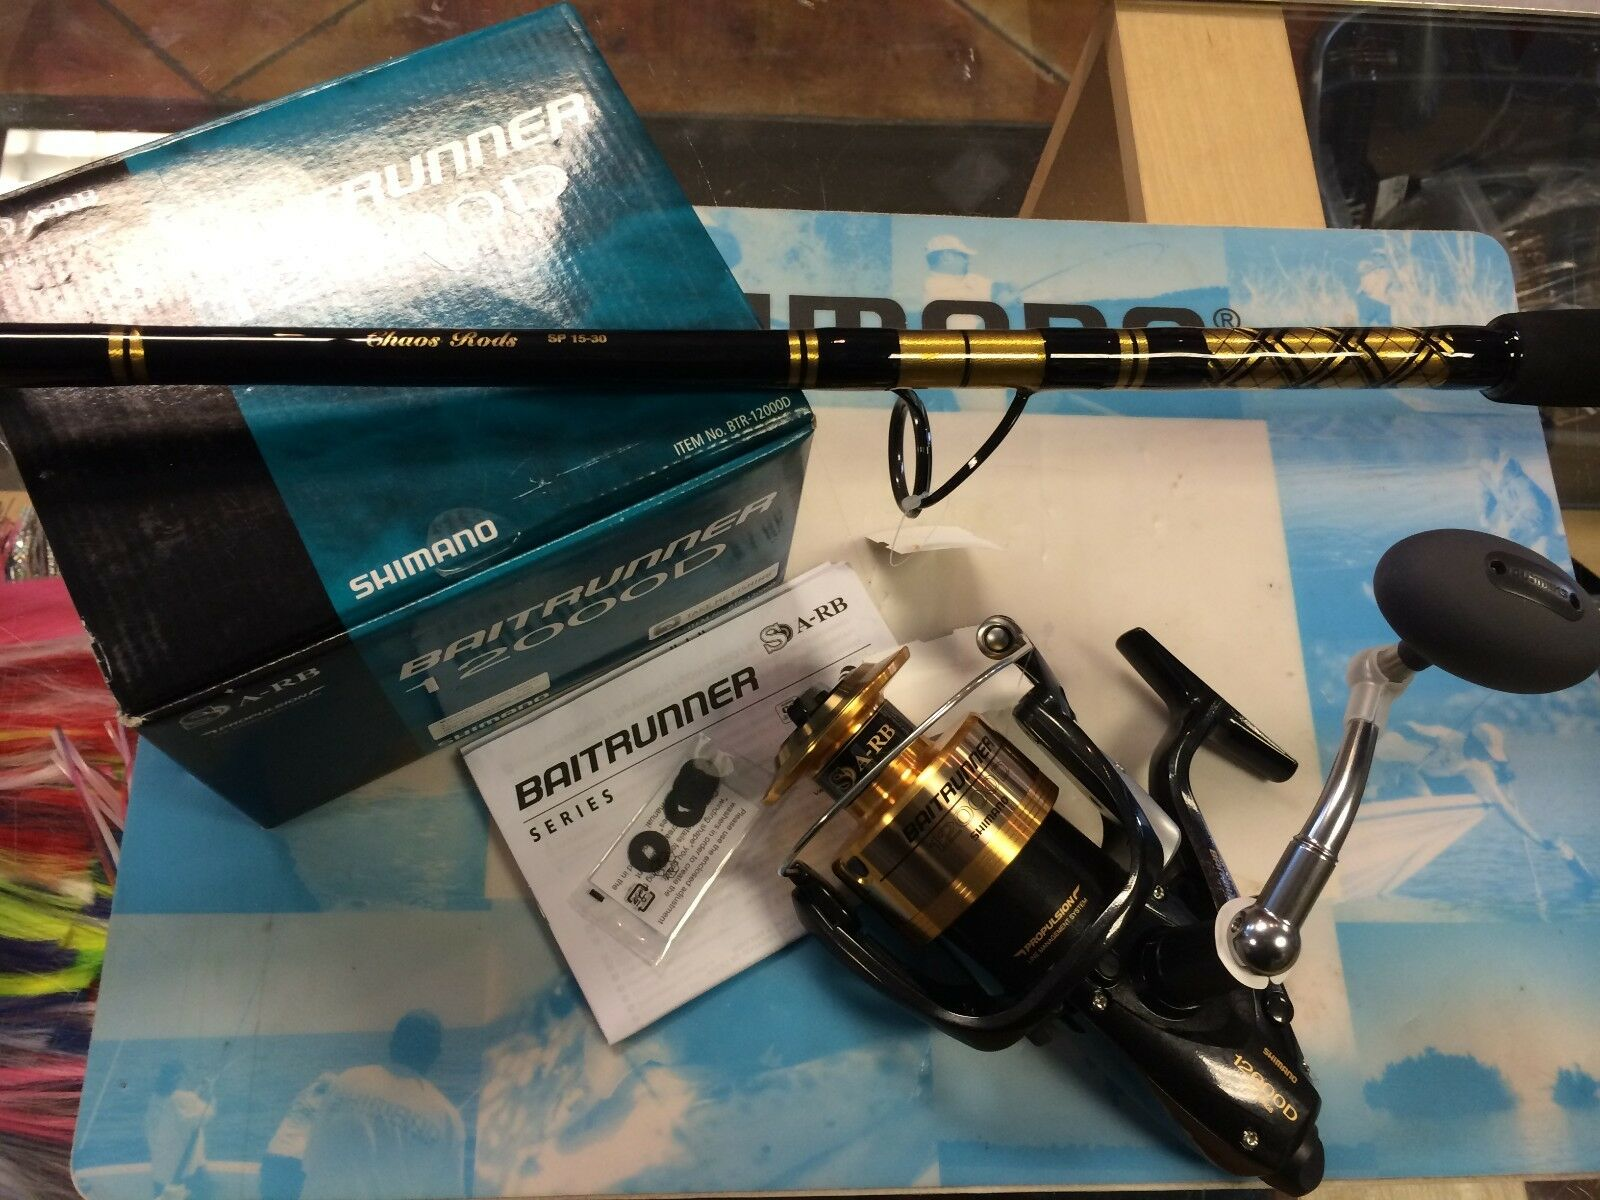 Nuevo Cocherete SHIMANO Baitrunner 12000D con Varilla caos SP Spinning Combo Package